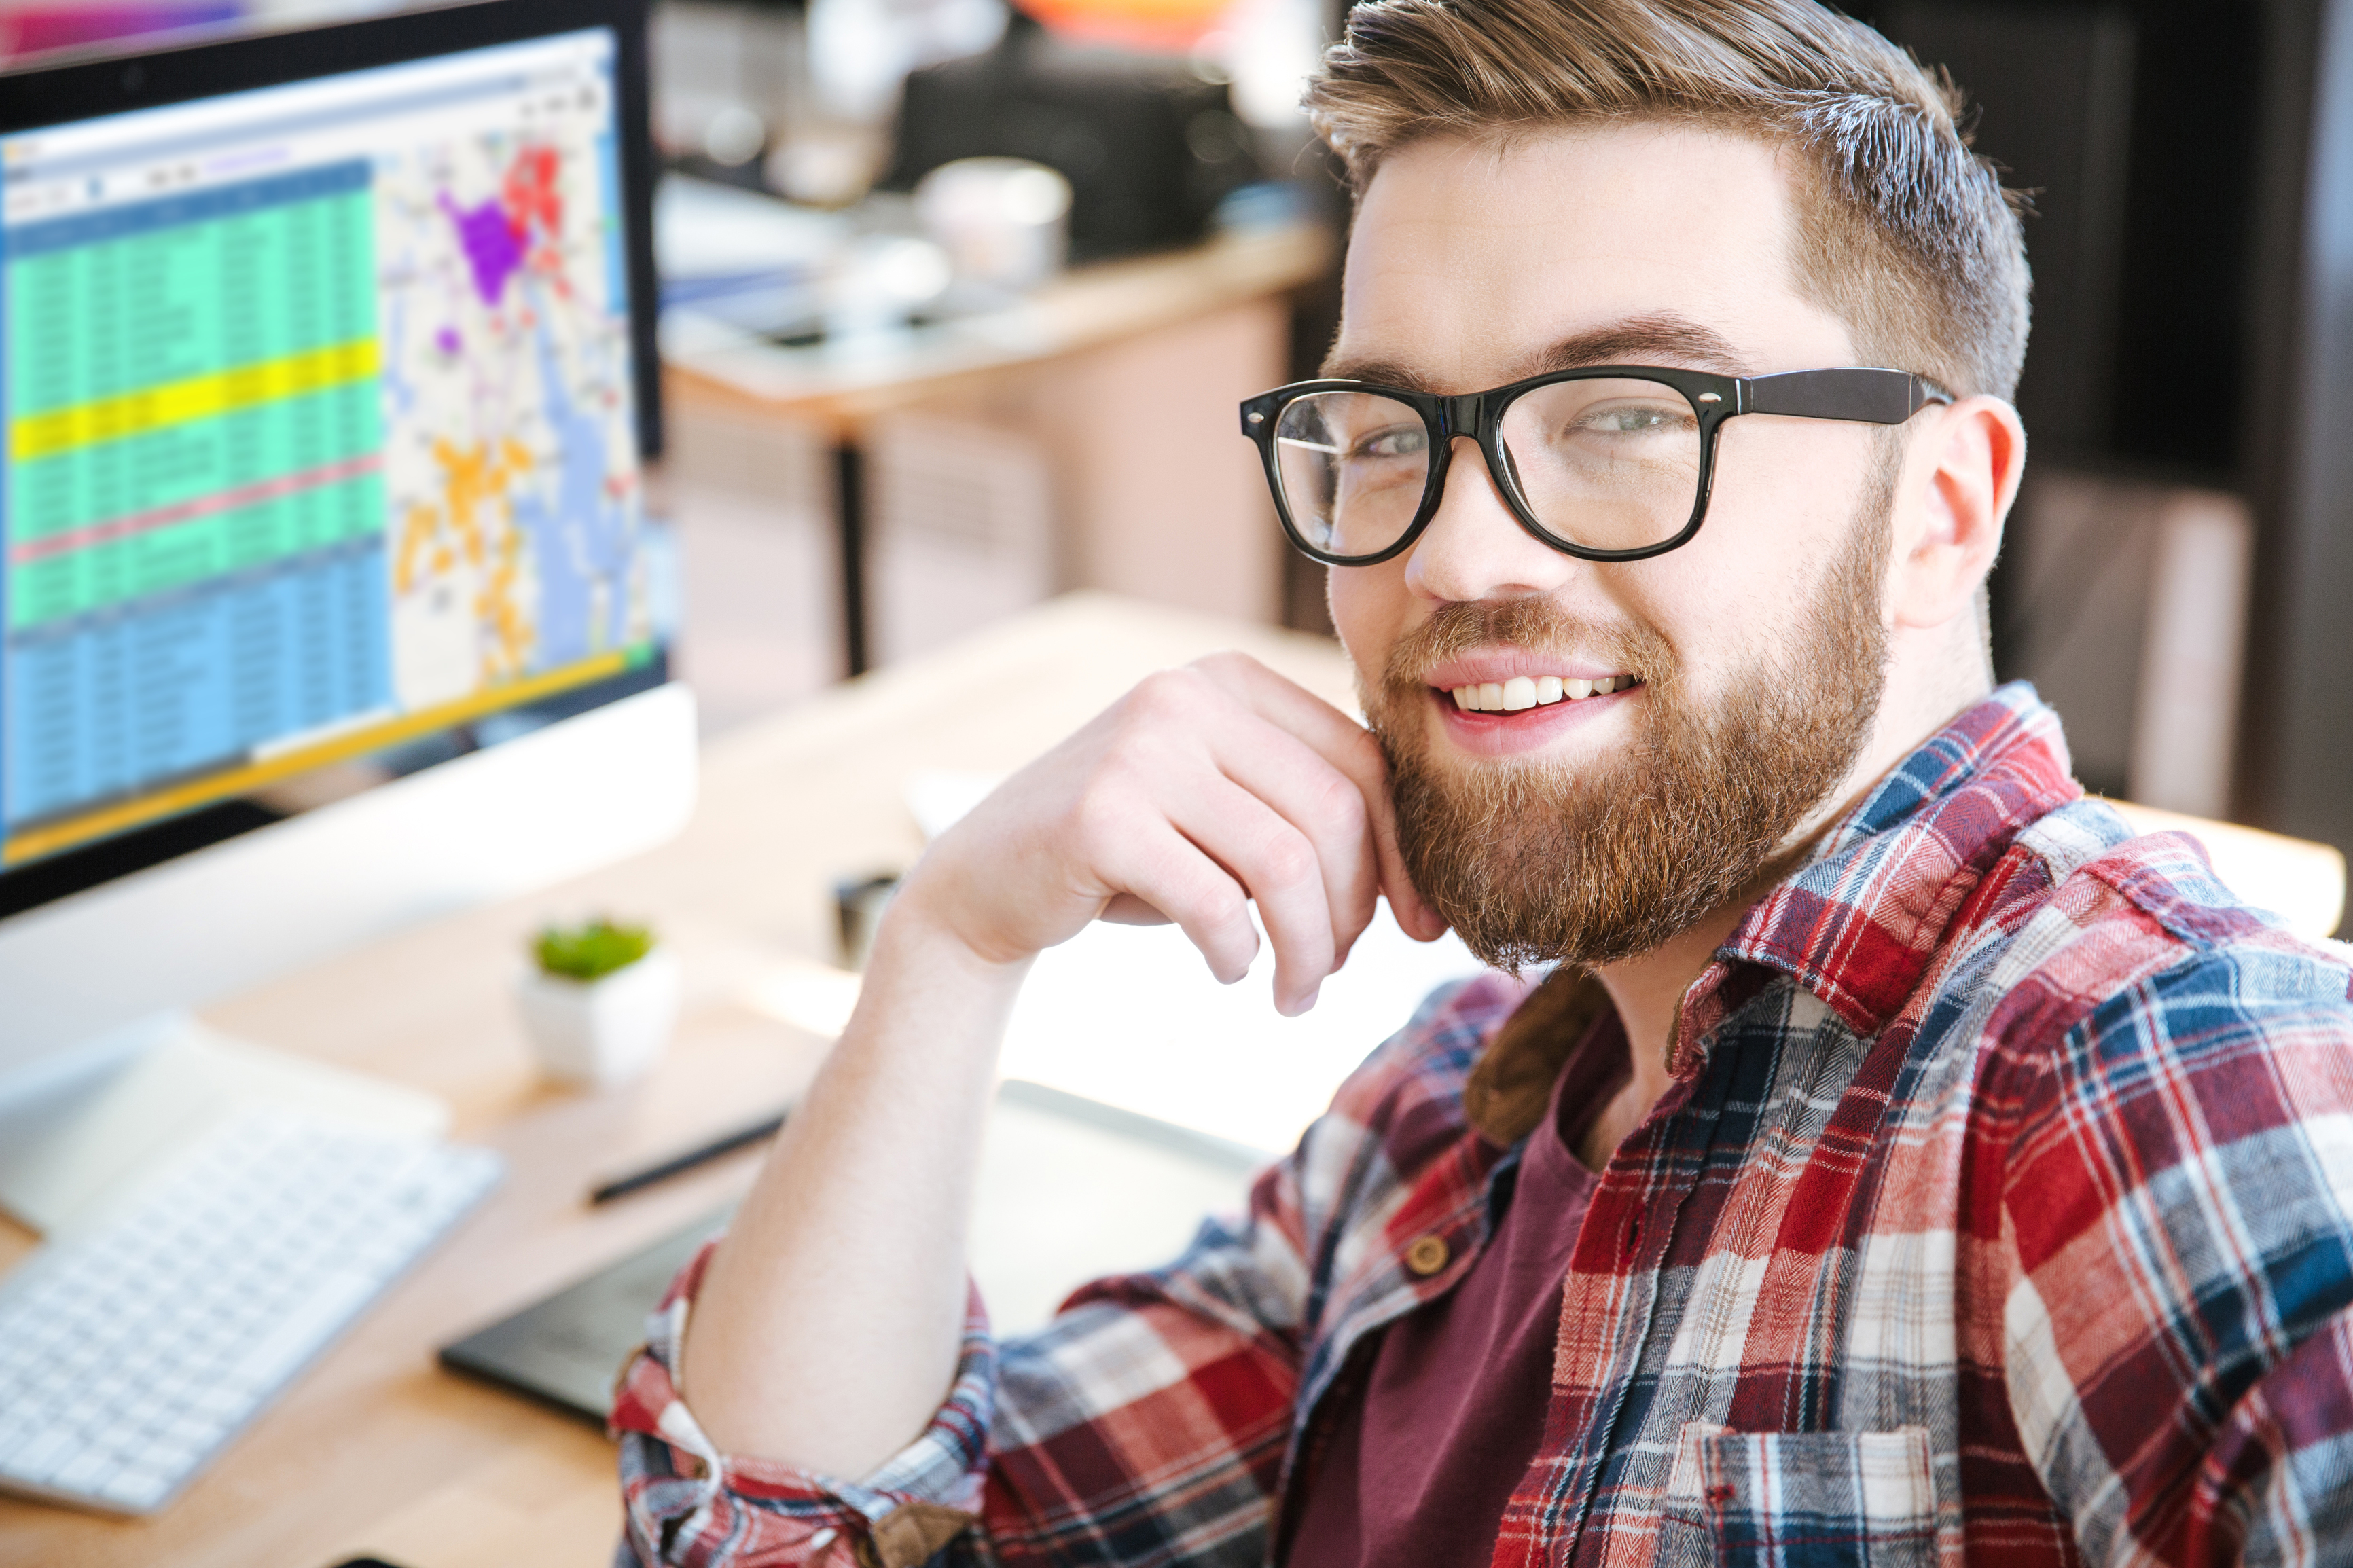 Man with beard and flannel shirt dispatch screen.jpg